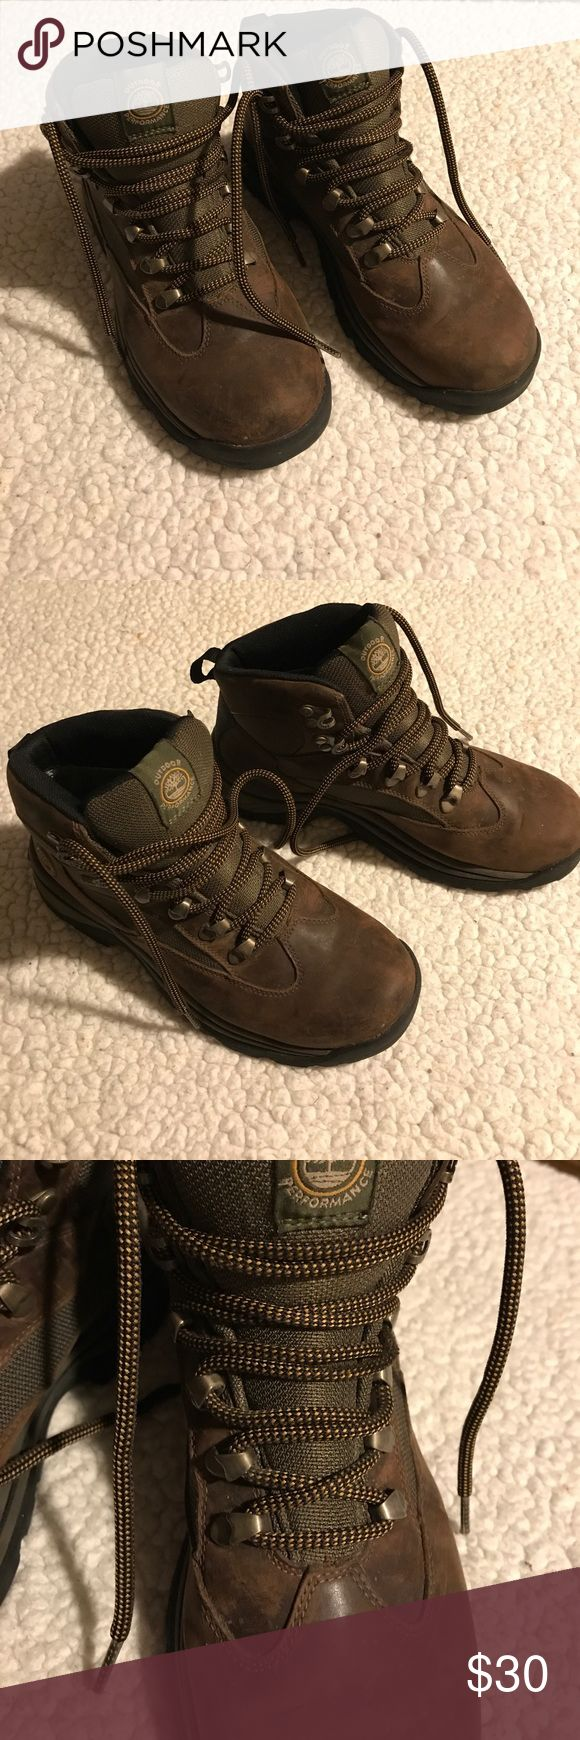 Sz 7 Timberland Boots Dark Brown Gore-Tex Great boots! Chocolate brown color. Light used. Genuine leather. Timberland Shoes Lace Up Boots